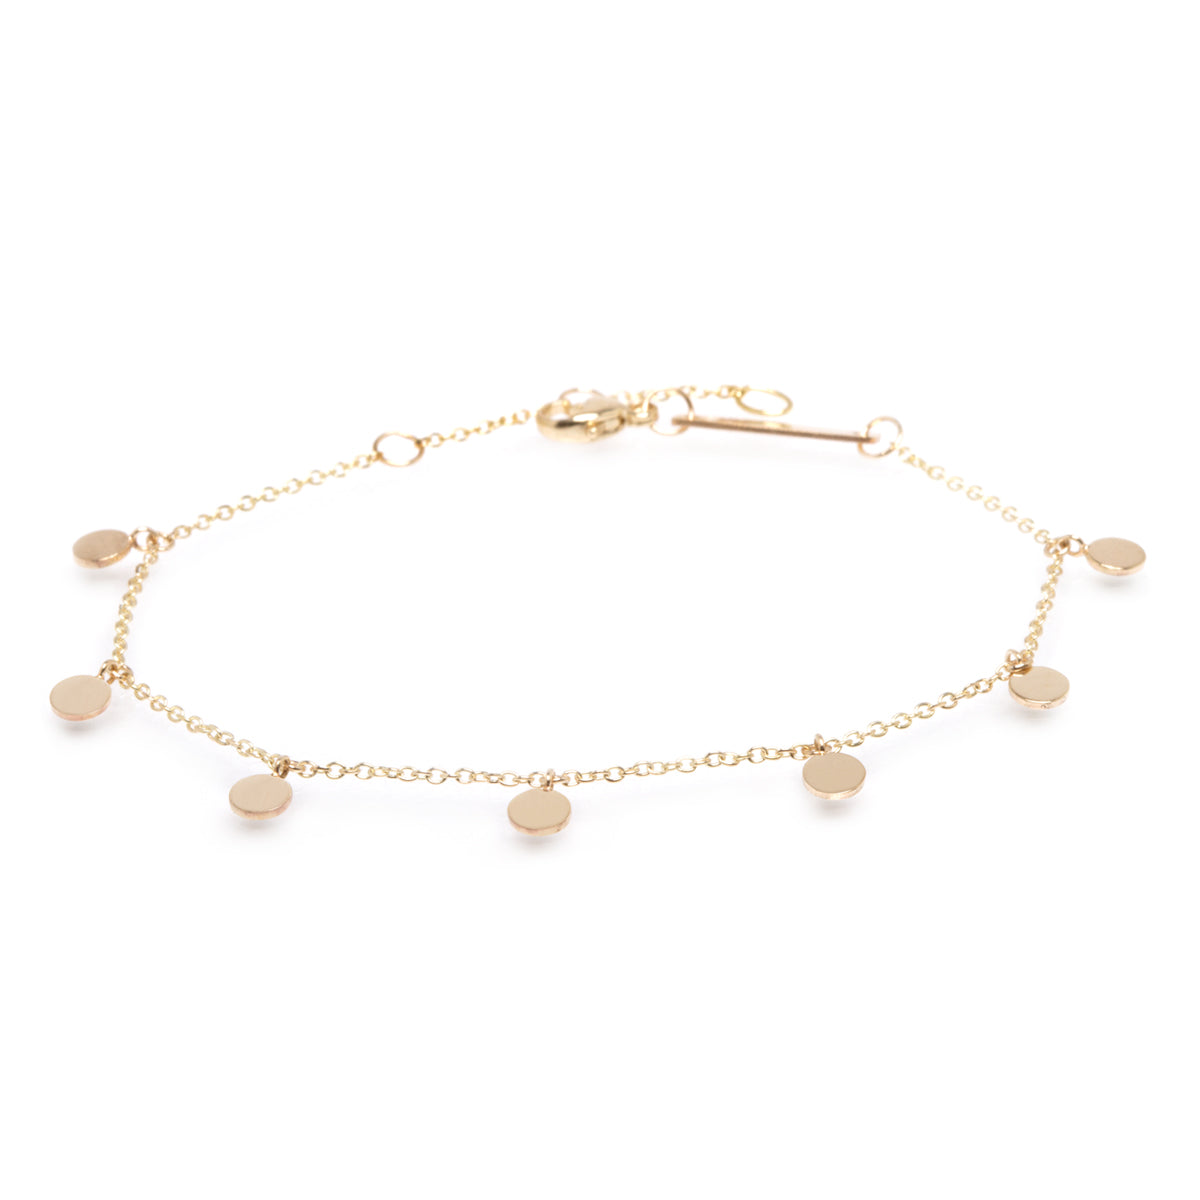 Zoë Chicco 14kt Yellow Gold 7 Itty Bitty Round Disc Charm Anklet